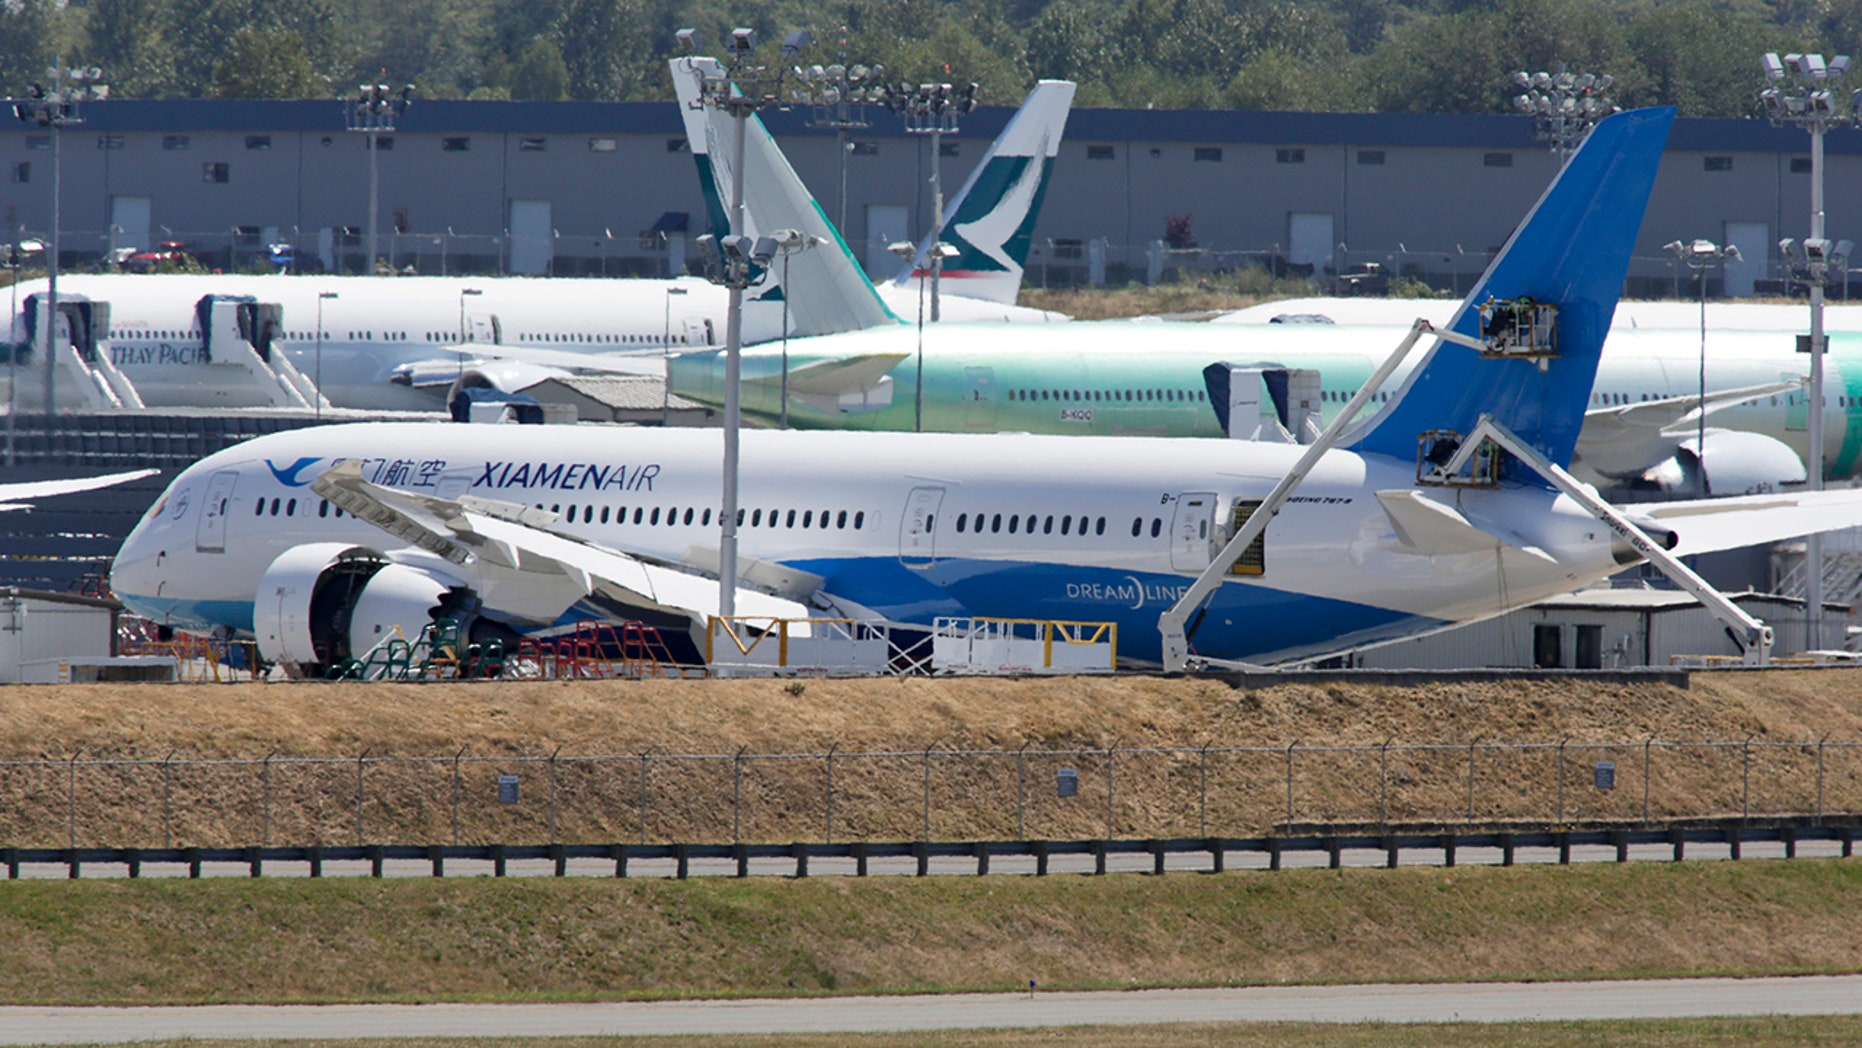 The Xiamen Air flight had stopped to restock when the incident occurred.